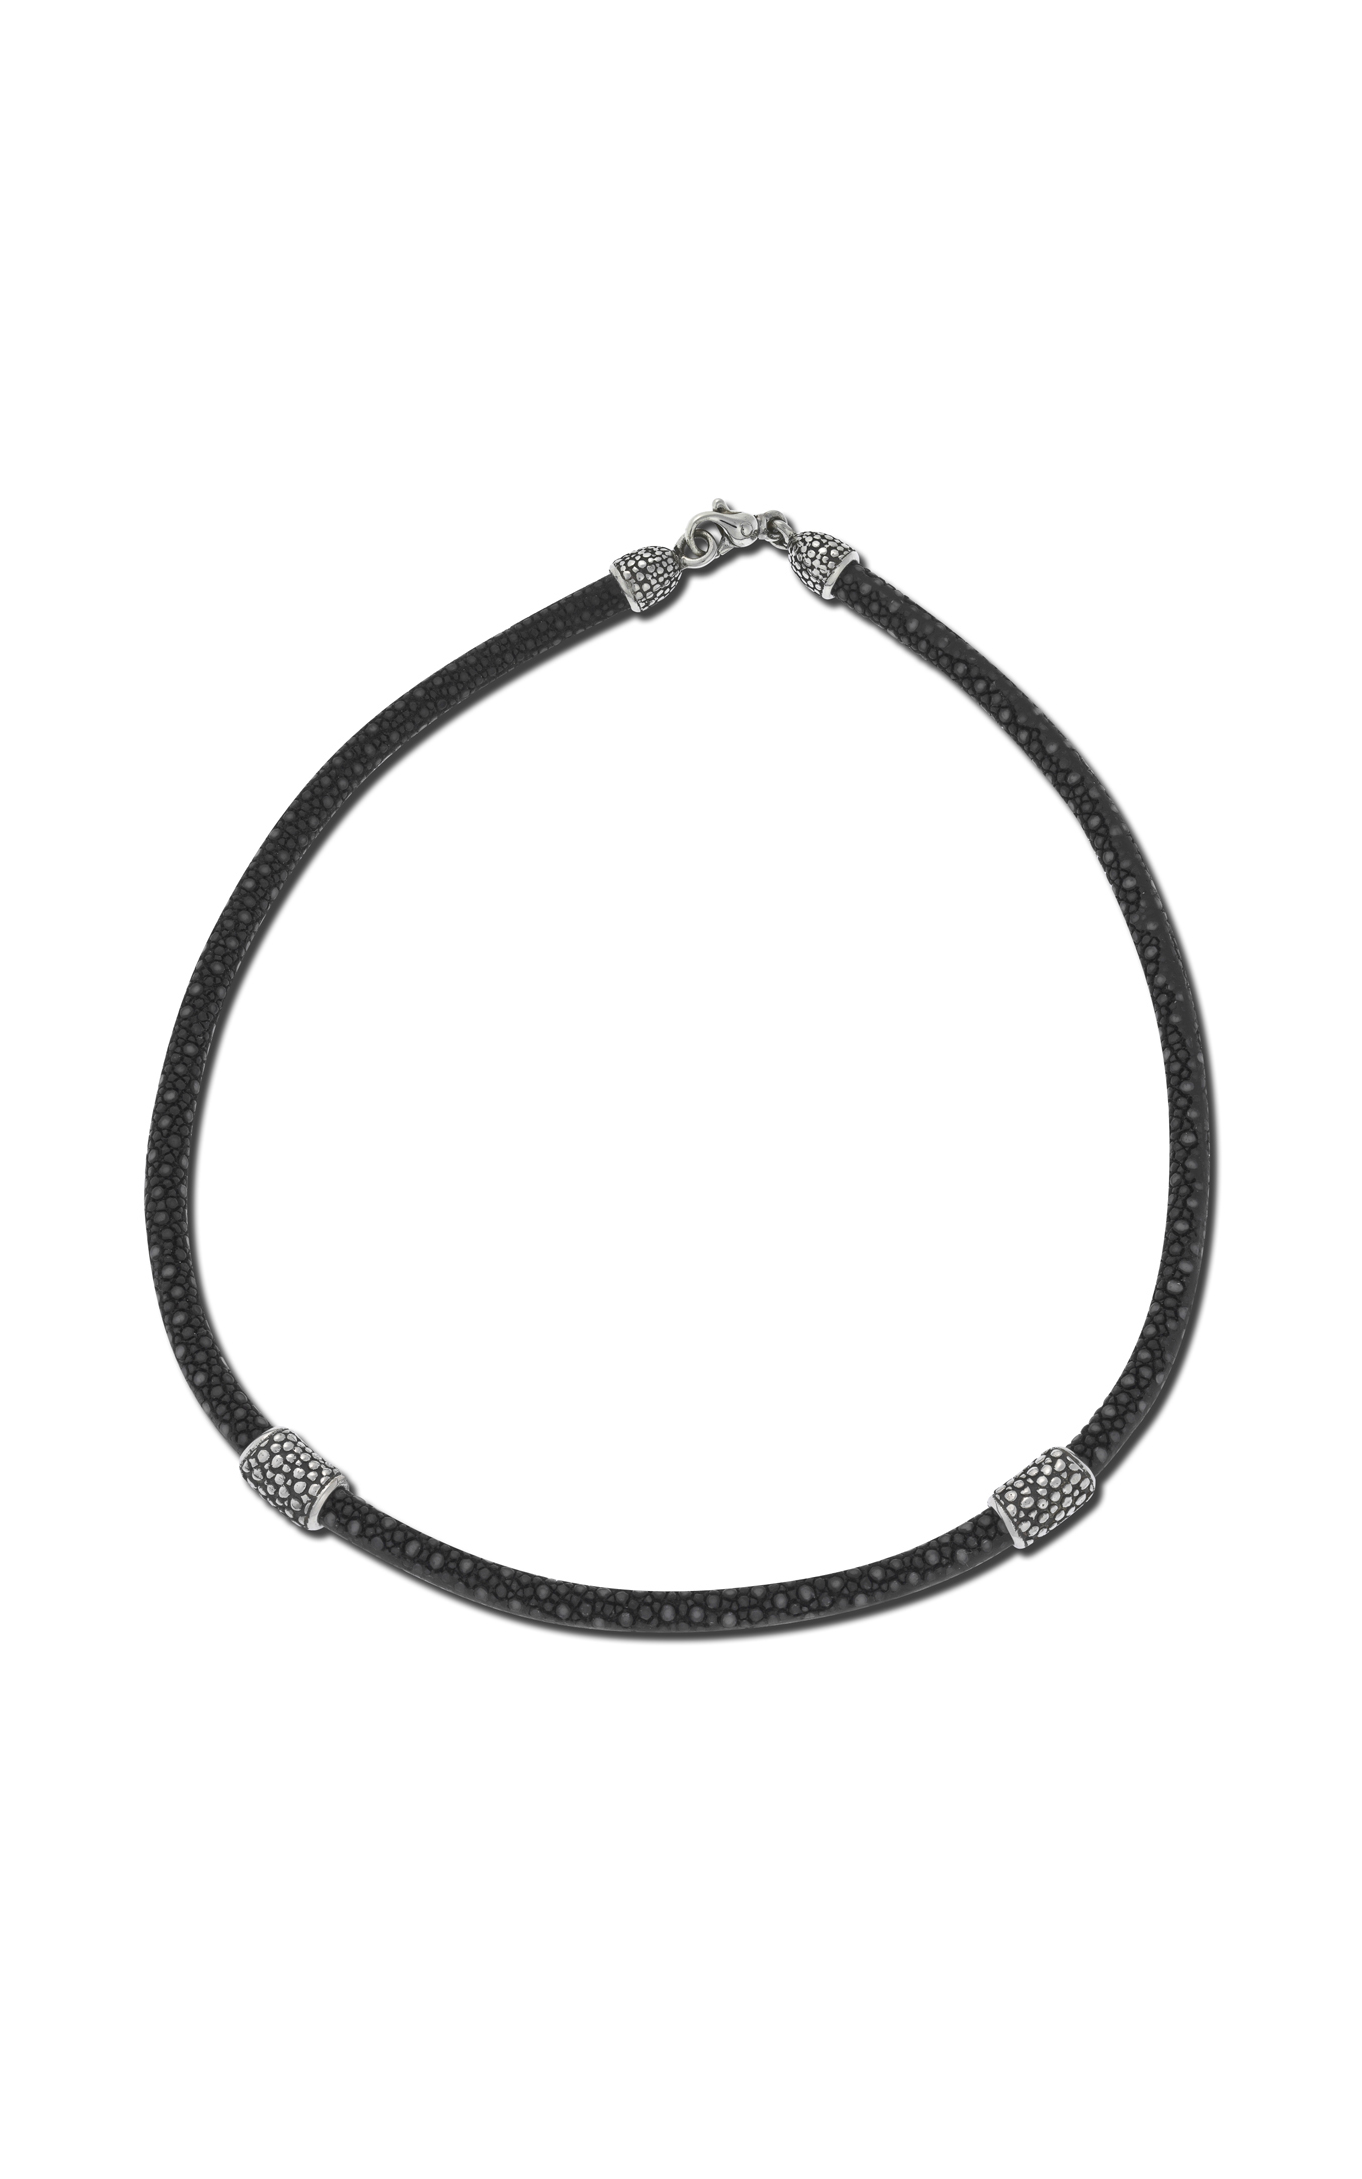 Zina Seafoam Necklace A1419-17-BLACK product image